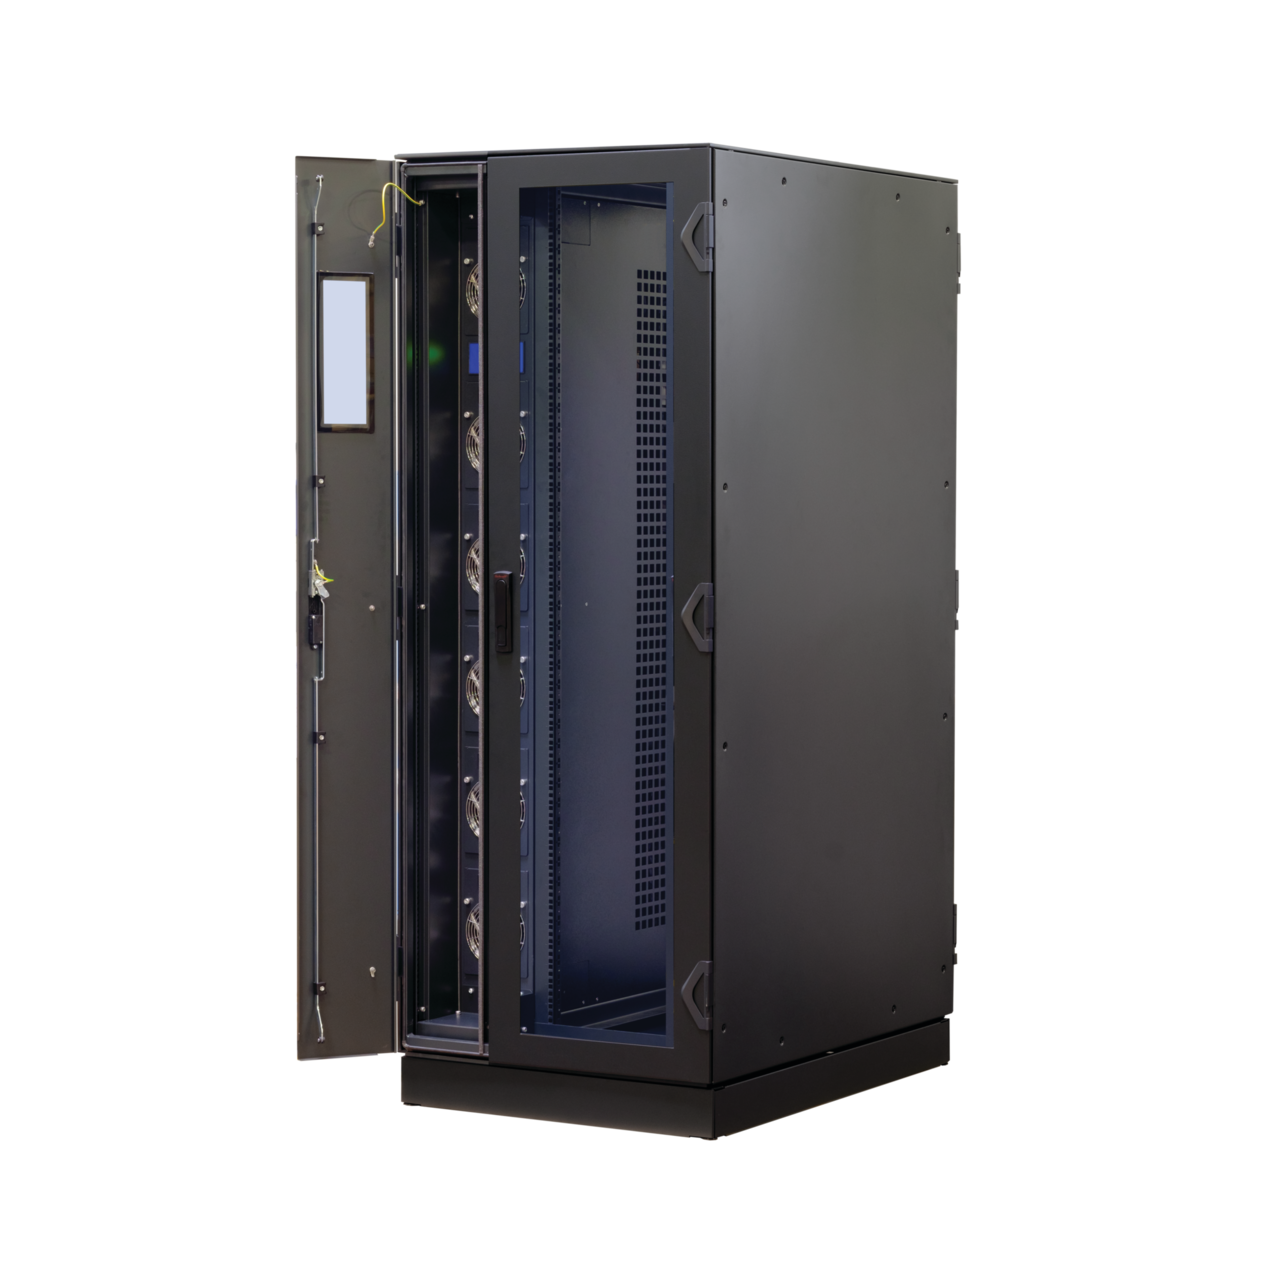 Image for VARISTAR LHX+, cabinet with double door, integrated airconditioner from nVent SCHROFF | Europe, Middle East, Africa and India